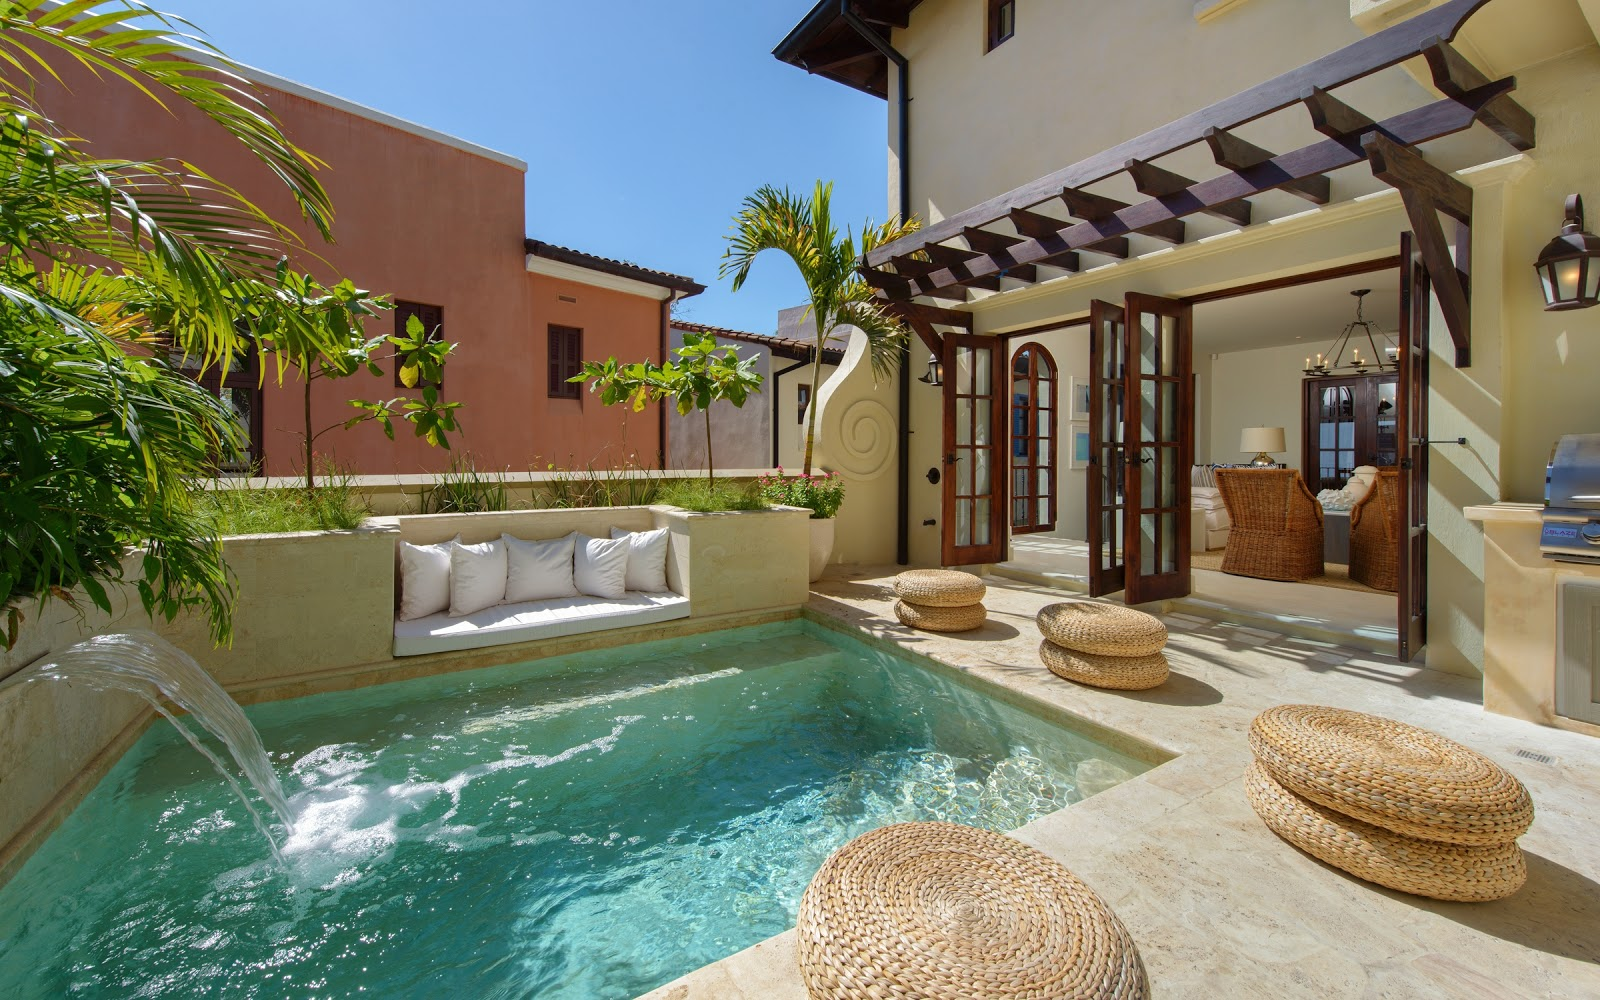 Casa Mar y Sol's wide array of living spaces and common areas makes it ideal for multiple athletes and their families traveling to the TRI together.